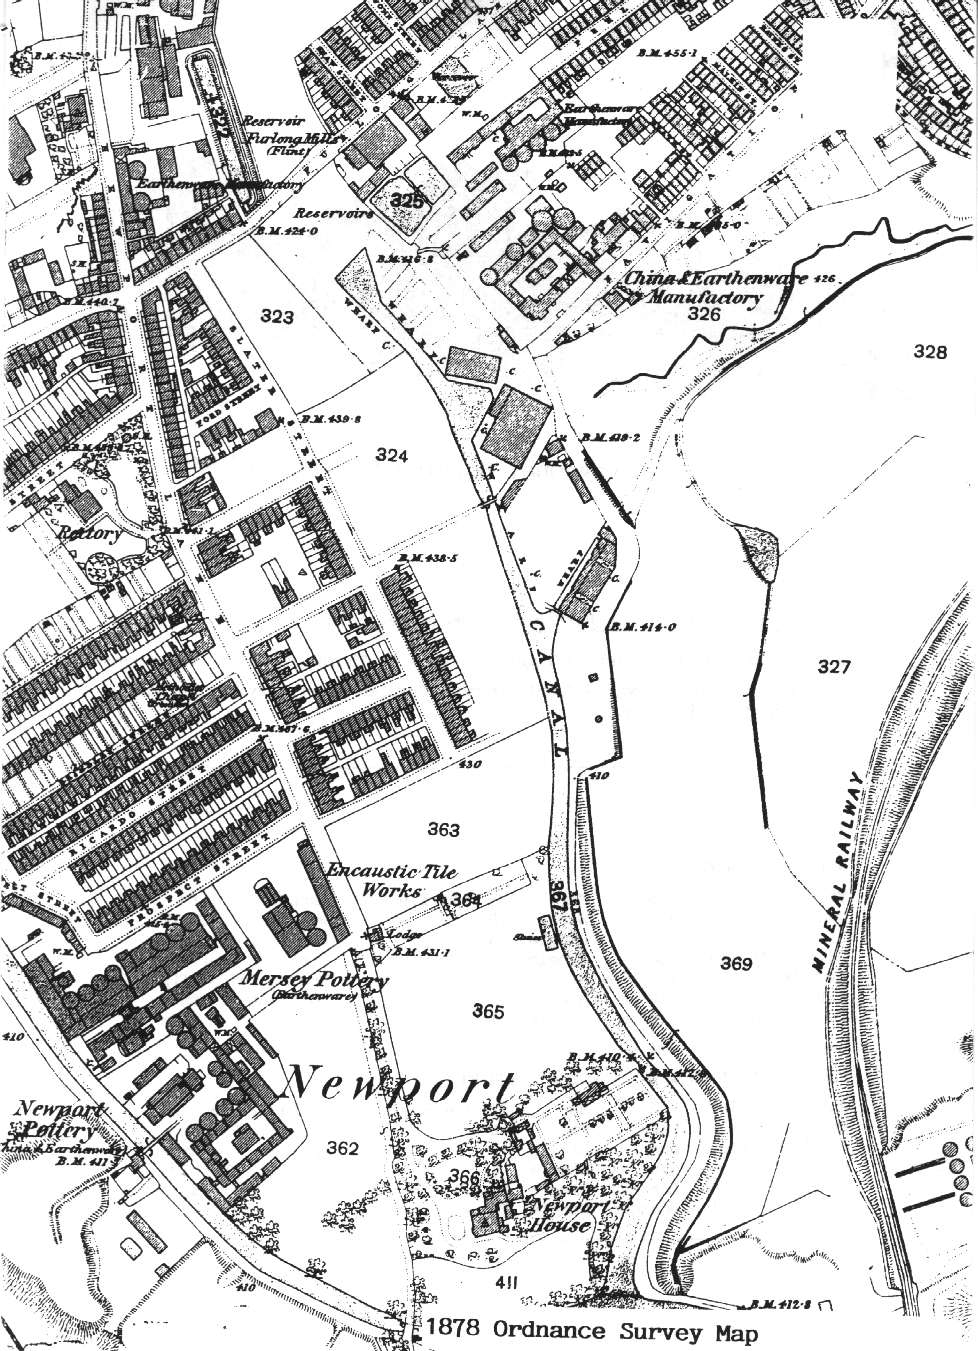 1878 Ordnance Survey Map of the Burslem Branch Canal area